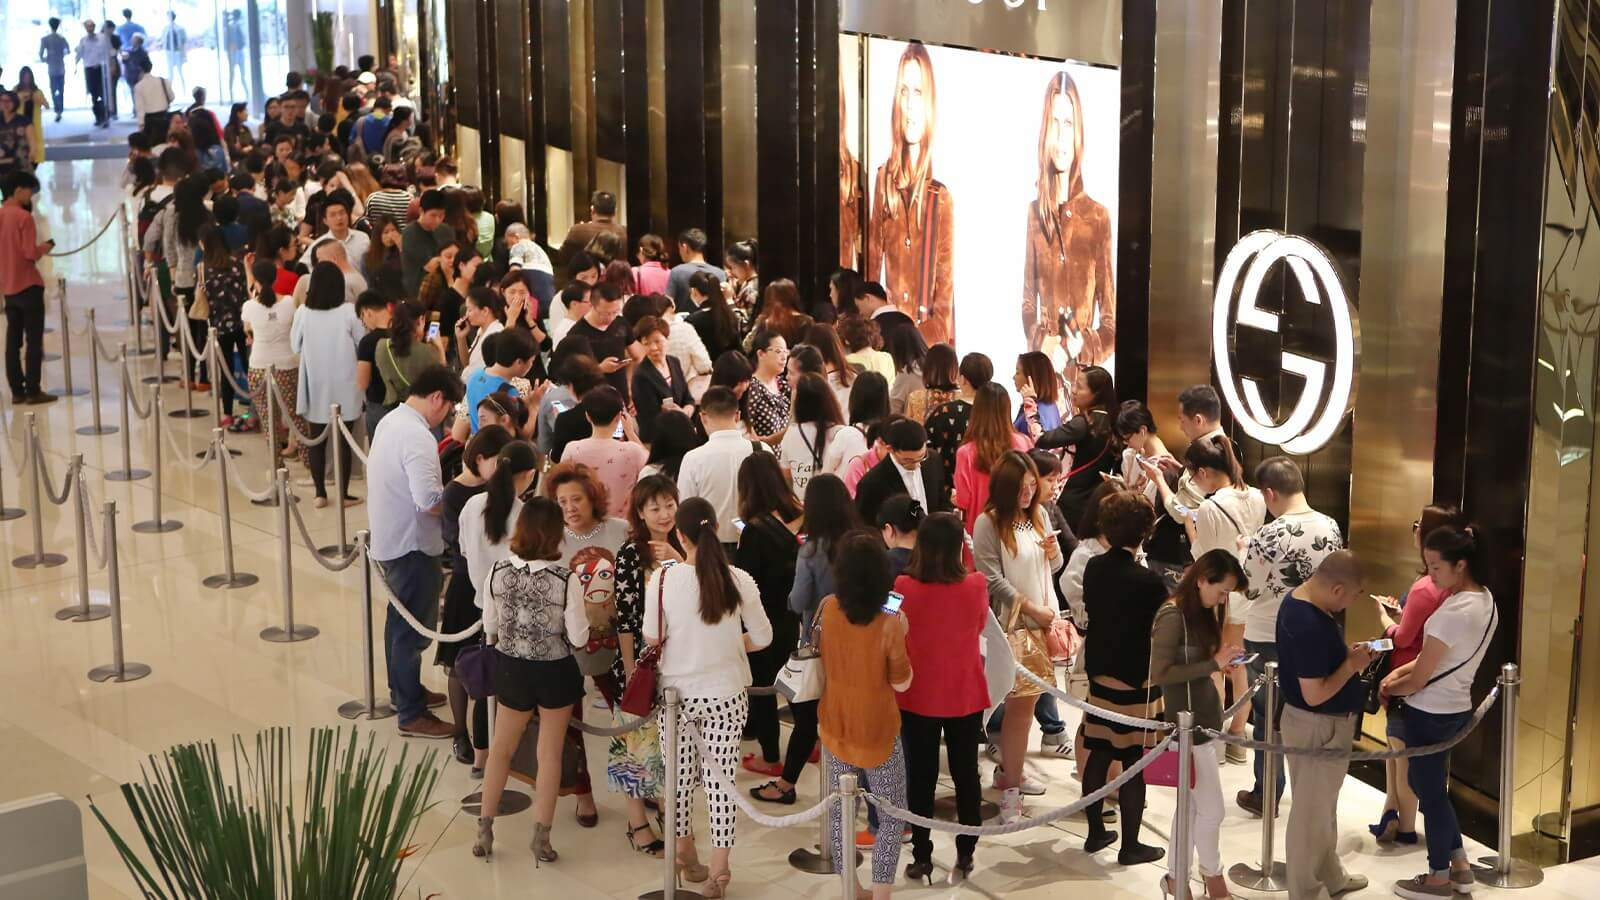 A Chinese mall, a strategic move for brands to enter the Chinese Market